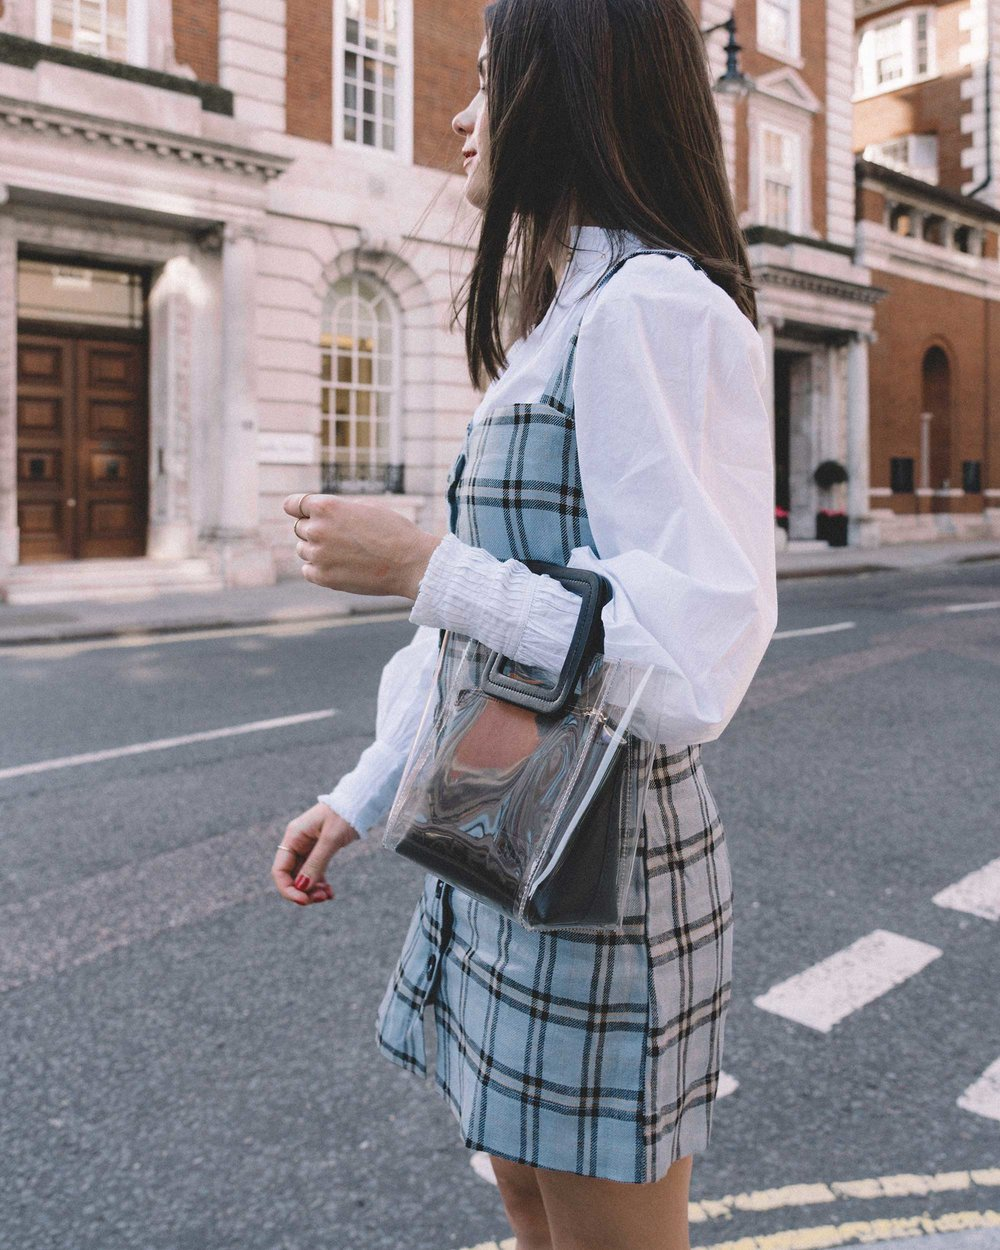 Reformation plaid button front mini dress, Joie Rickelle white blouse Top, London Fashion Week Outfit, Fall Plaid Dress, Fall Plaid Outfit10.jpg